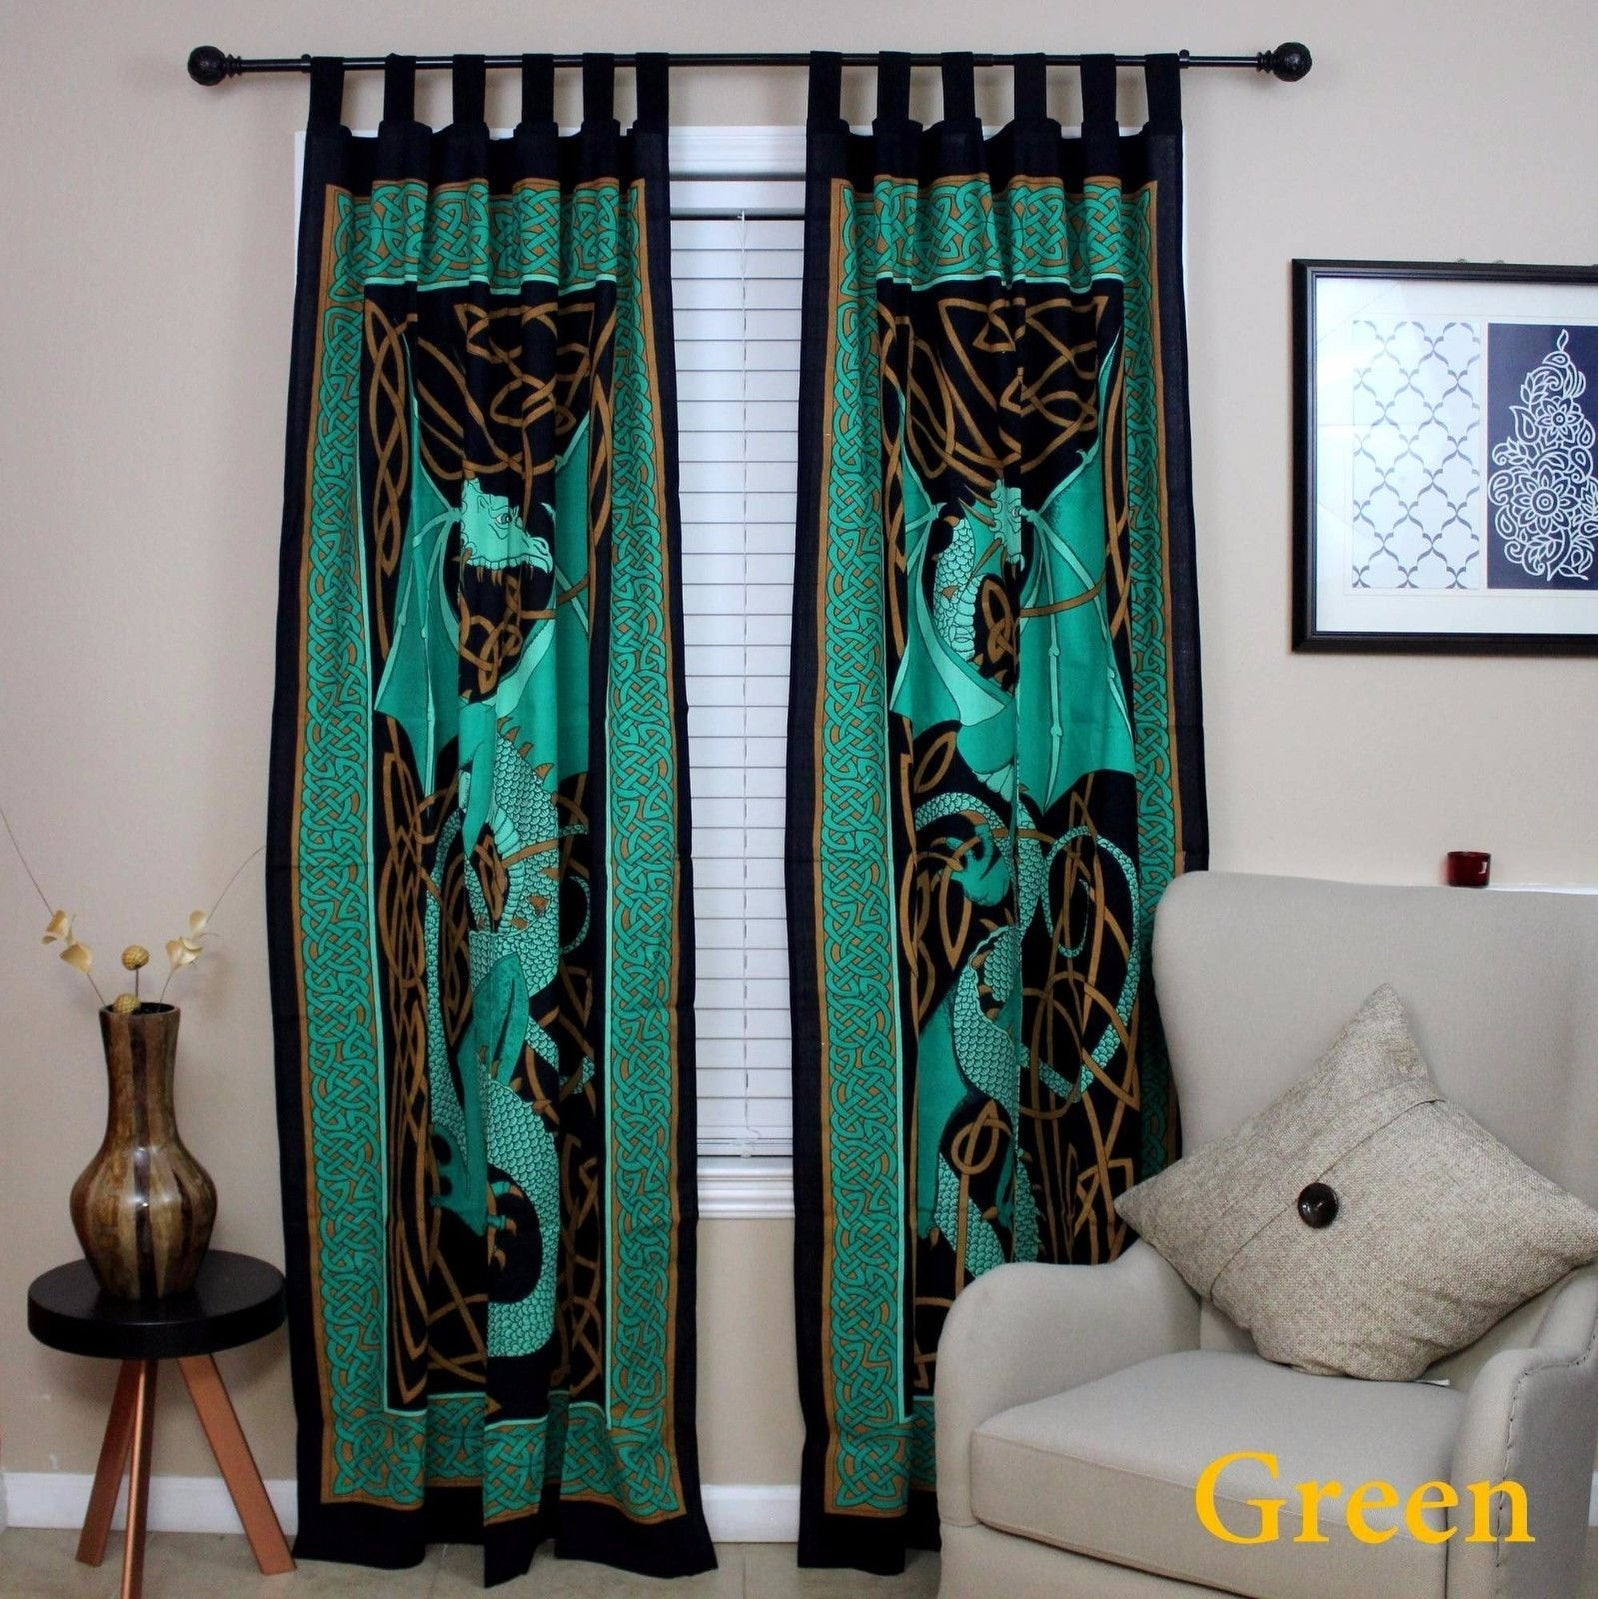 Handmade Celtic Dragon Curtain 100% Cotton Drape Panel 44 x 88 inches in Green Red Brown Blue - 44 x 88 inches - Thumbnail 6